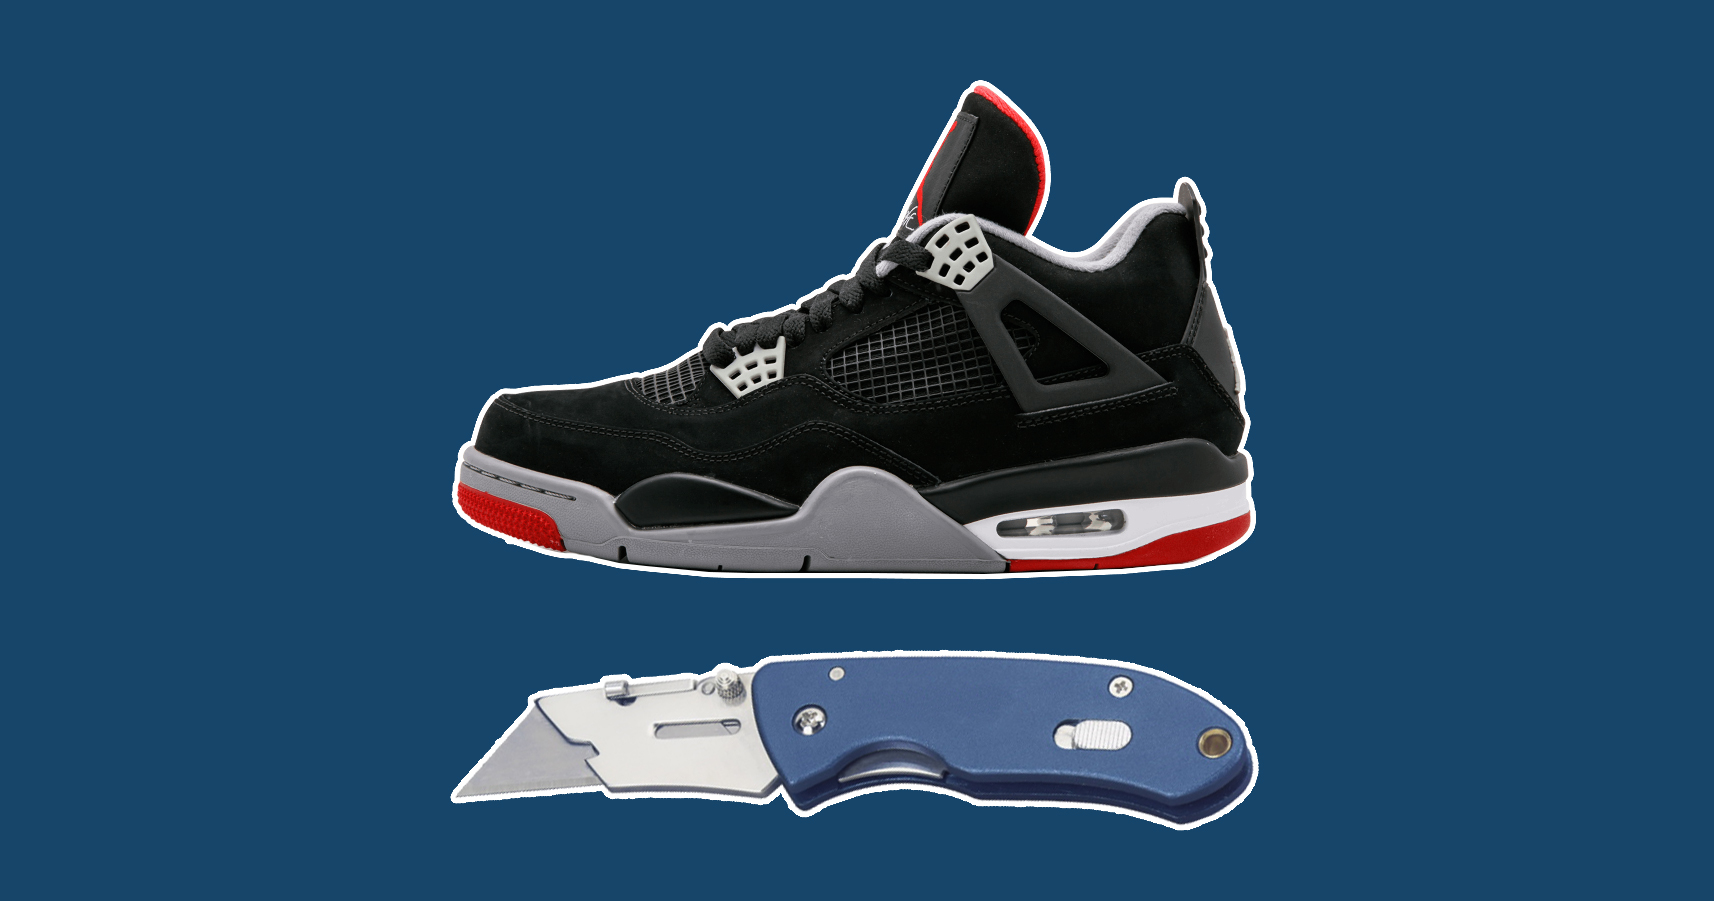 Teen slashes a bully with a box cutter over a pair of Jordans